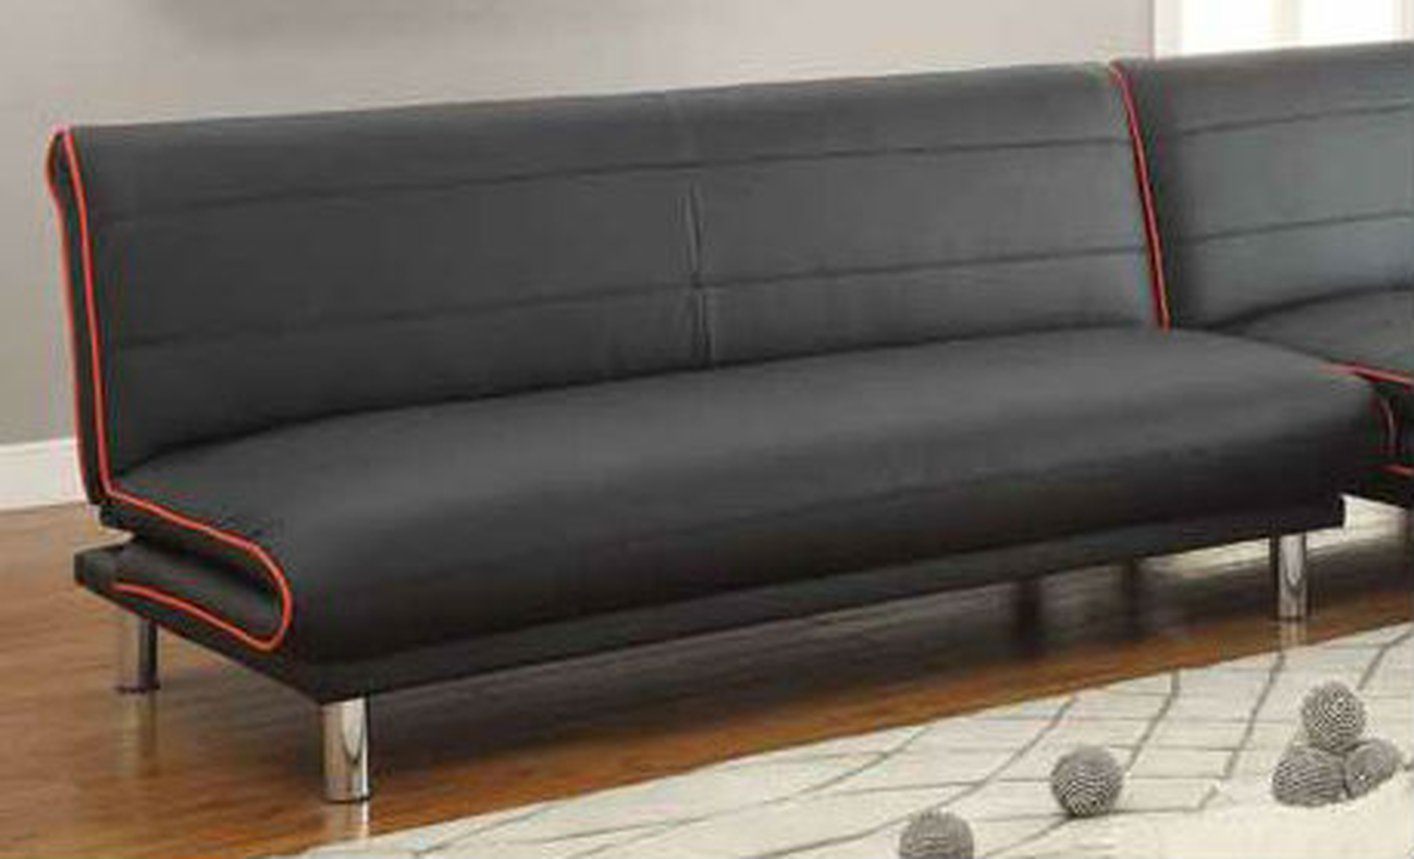 Game Room Sofa picture on Game Room Sofacoaster 500776.html with Game Room Sofa, sofa 78ab3cf49892abd0bda5774b2f560fe0